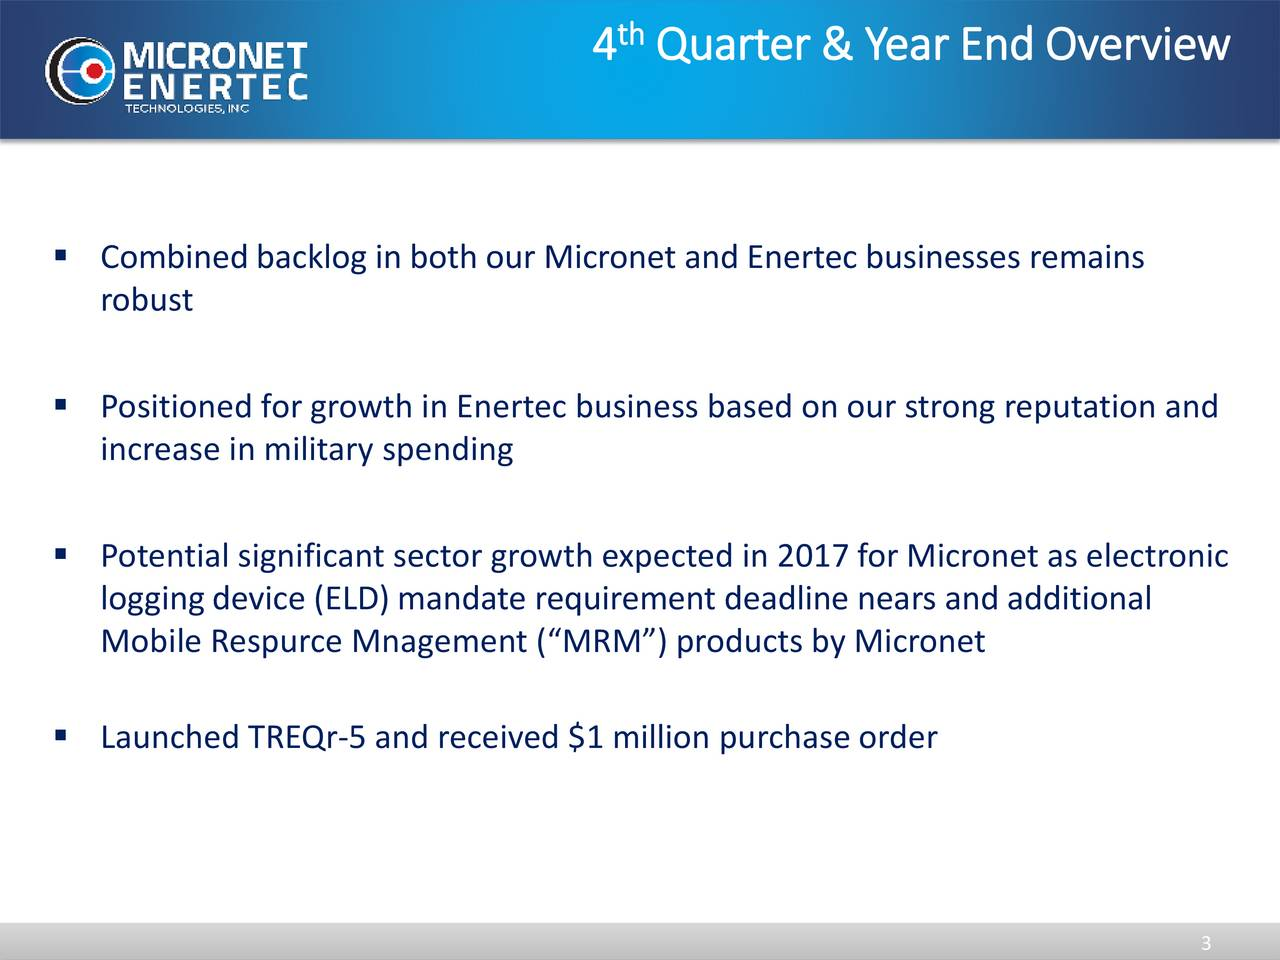 4 Quarter & Year End Overview Combined backlog in both our Micronet and Enertec businesses remains robust Positioned for growth in Enertec business based on our strong reputation and increase in military spending Potential significant sector growth expected in 2017 for Micronet as electronic logging device (ELD) mandate requirement deadline nears and additional Mobile Respurce Mnagement (MRM) products by Micronet Launched TREQr-5 and received $1 million purchase order